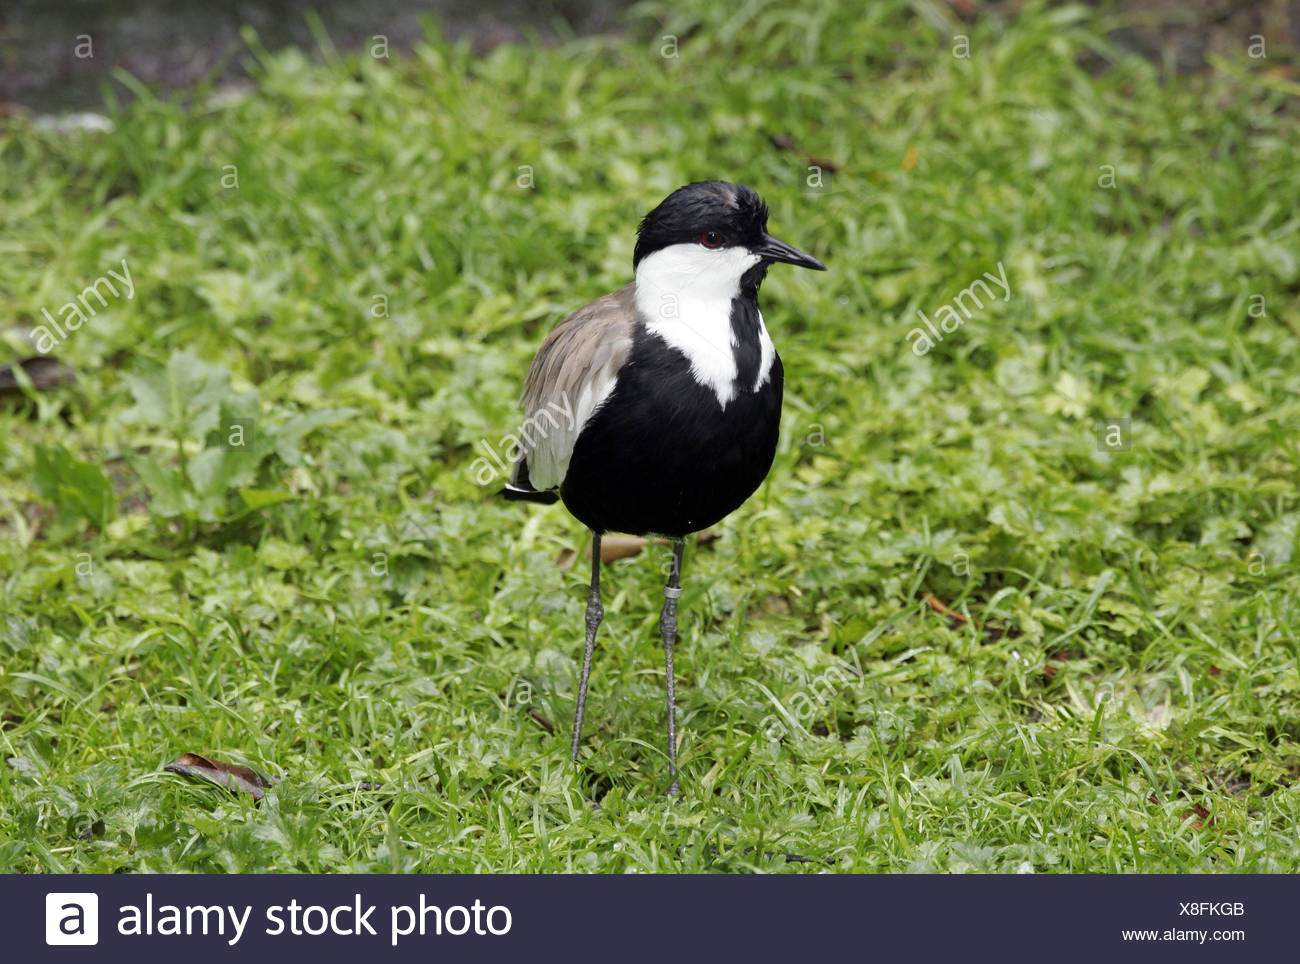 zoology / animals, avian / birds, Spur-winged Plover (Vanellus spinosus), standing in grass, distribution: Europe, Asia Minor, Additional-Rights-Clearance-Info-Not-Available - Stock Image